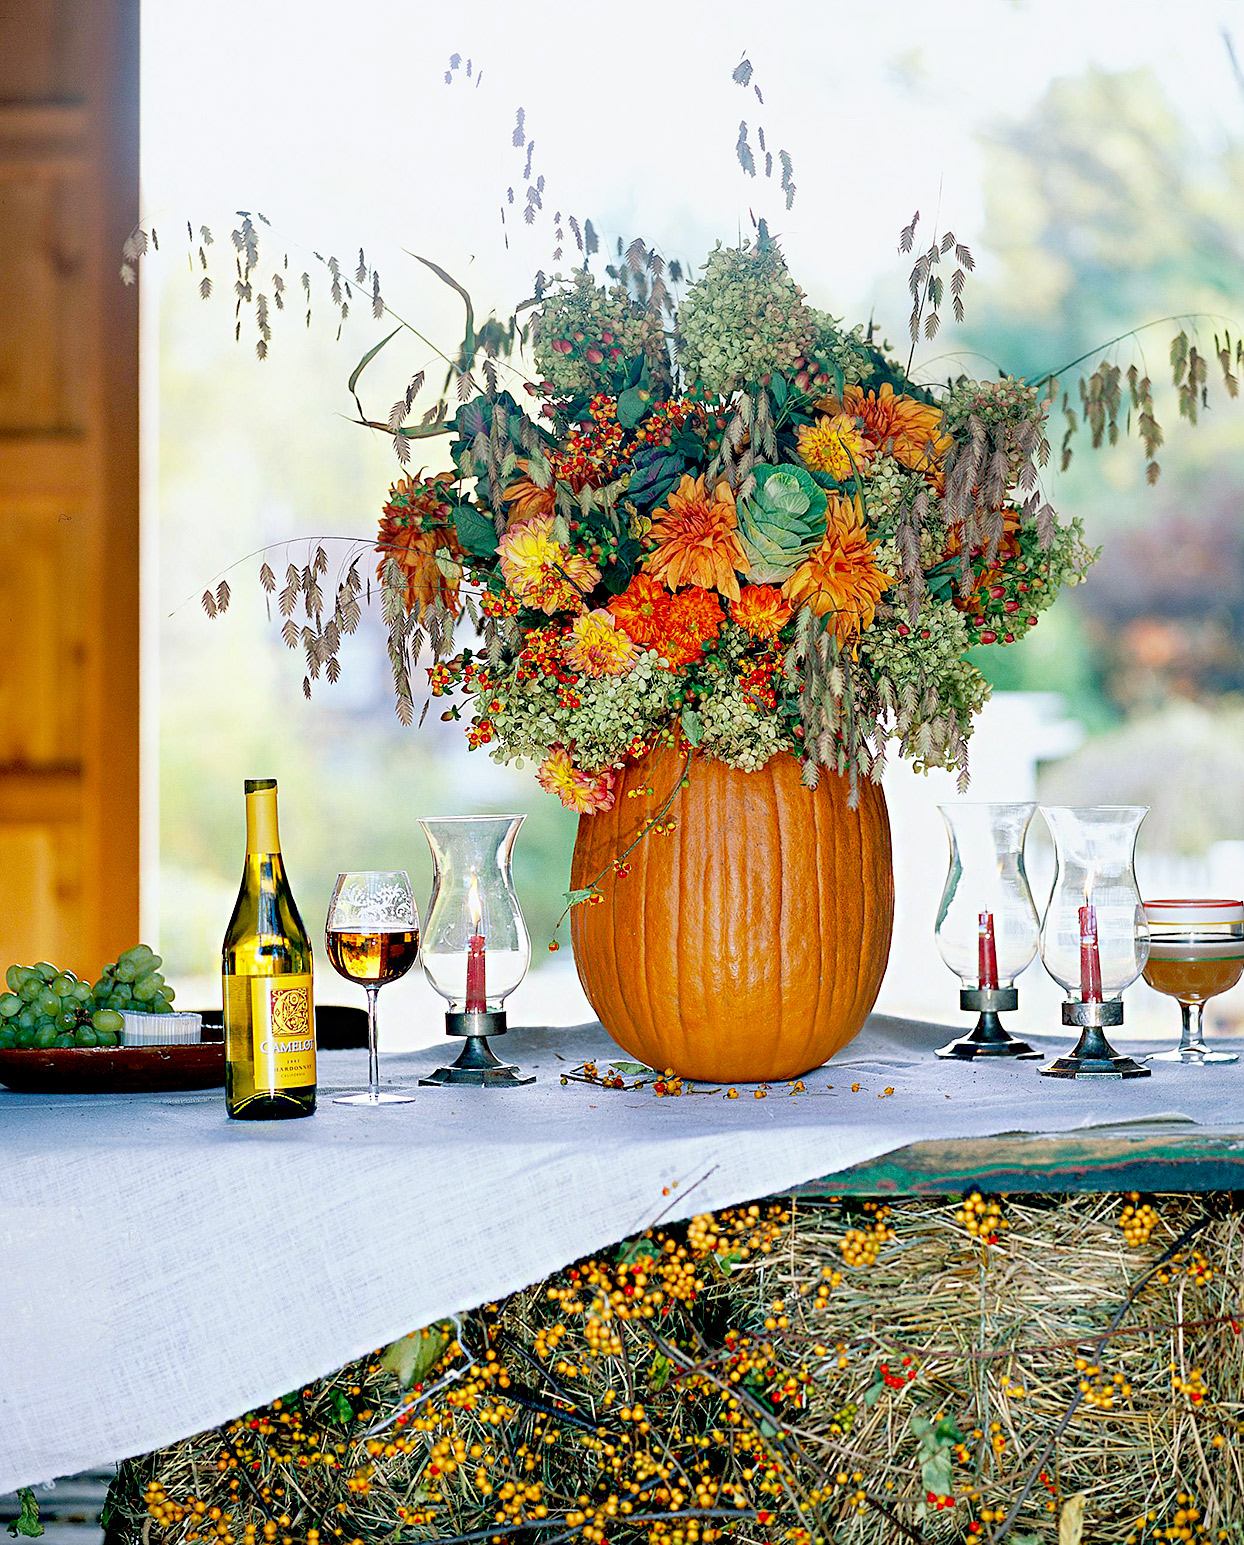 Pumpkin centerpiece with fall plants and table setting